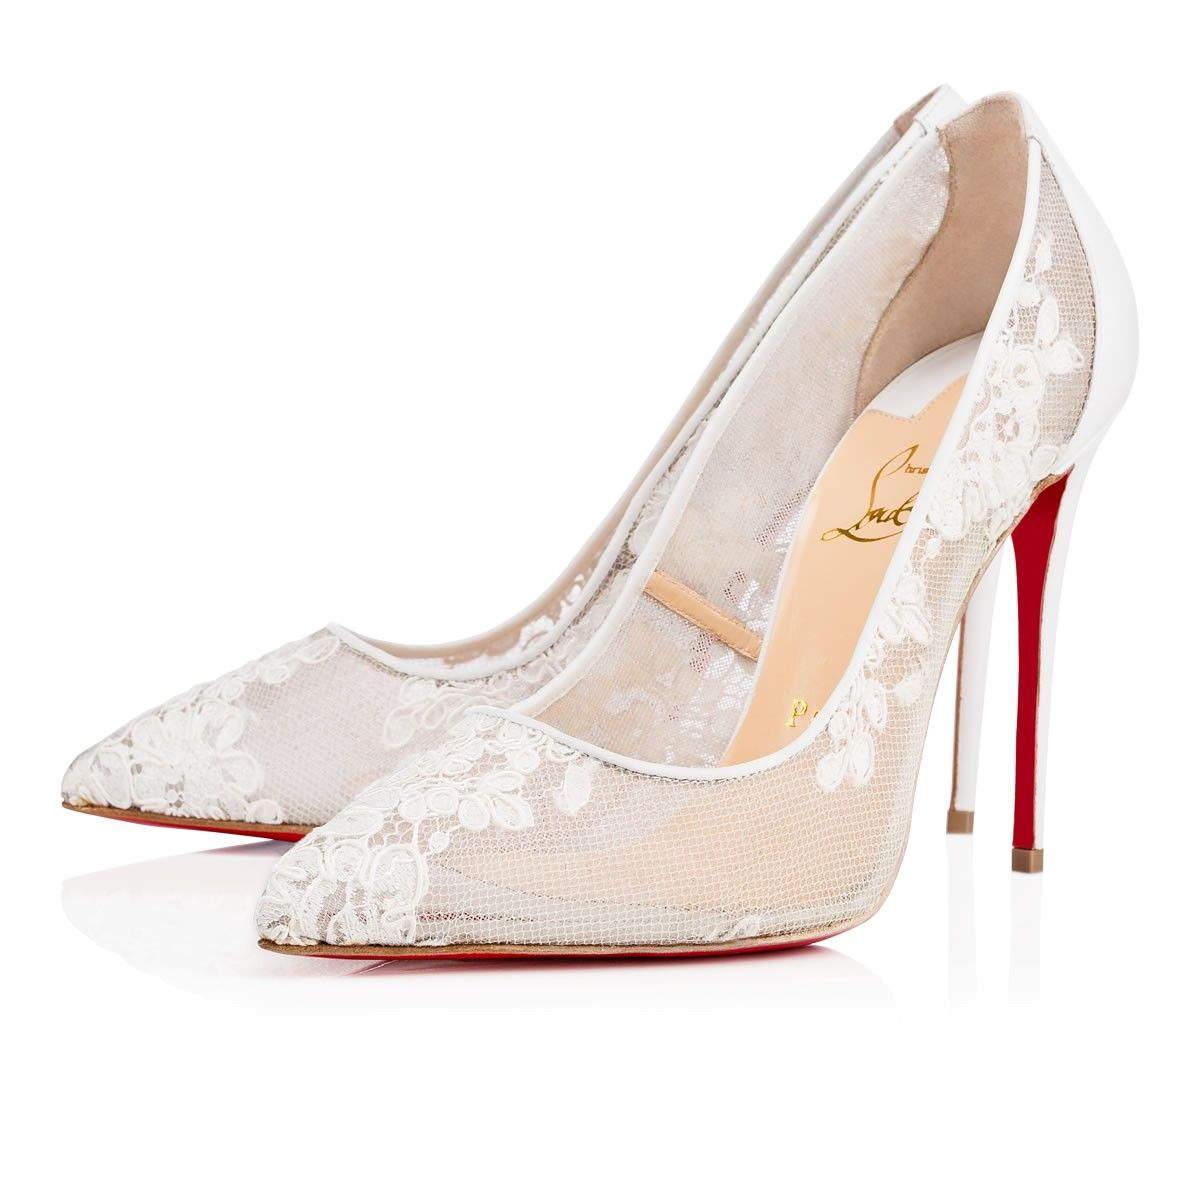 christian louboutin white lace shoes